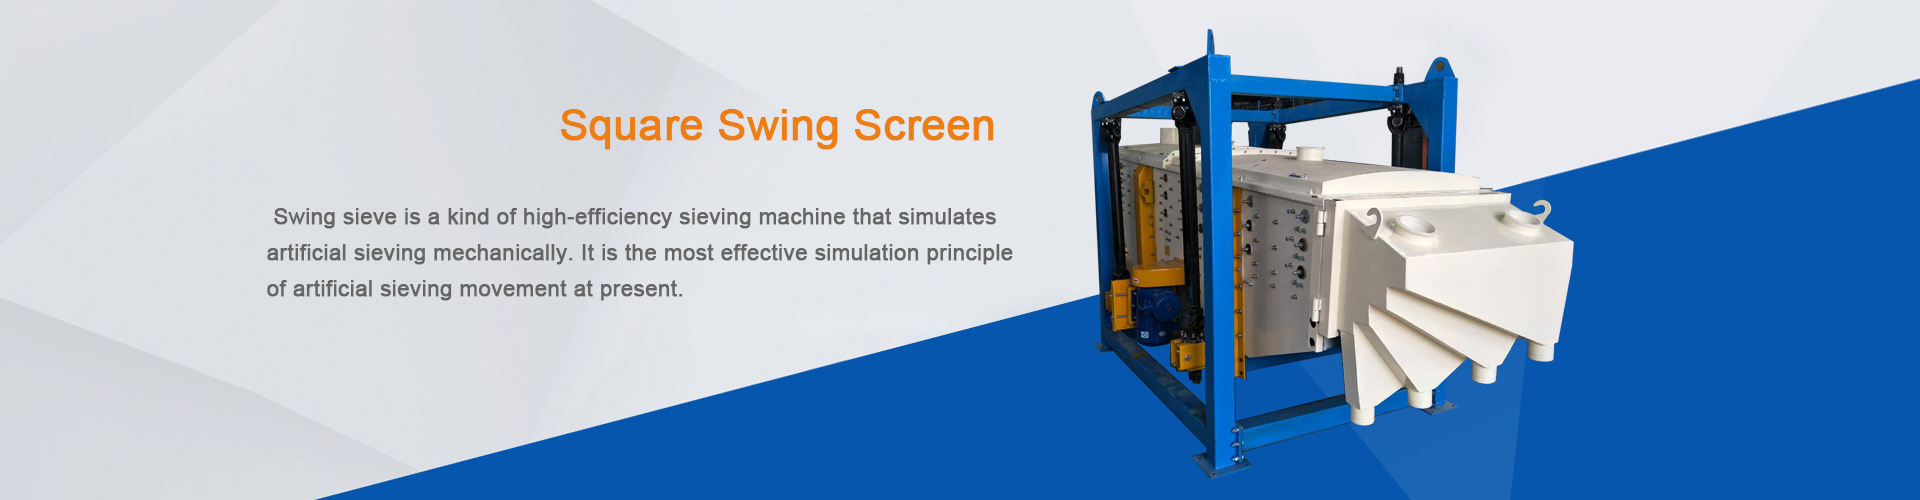 Square Swing Sieve